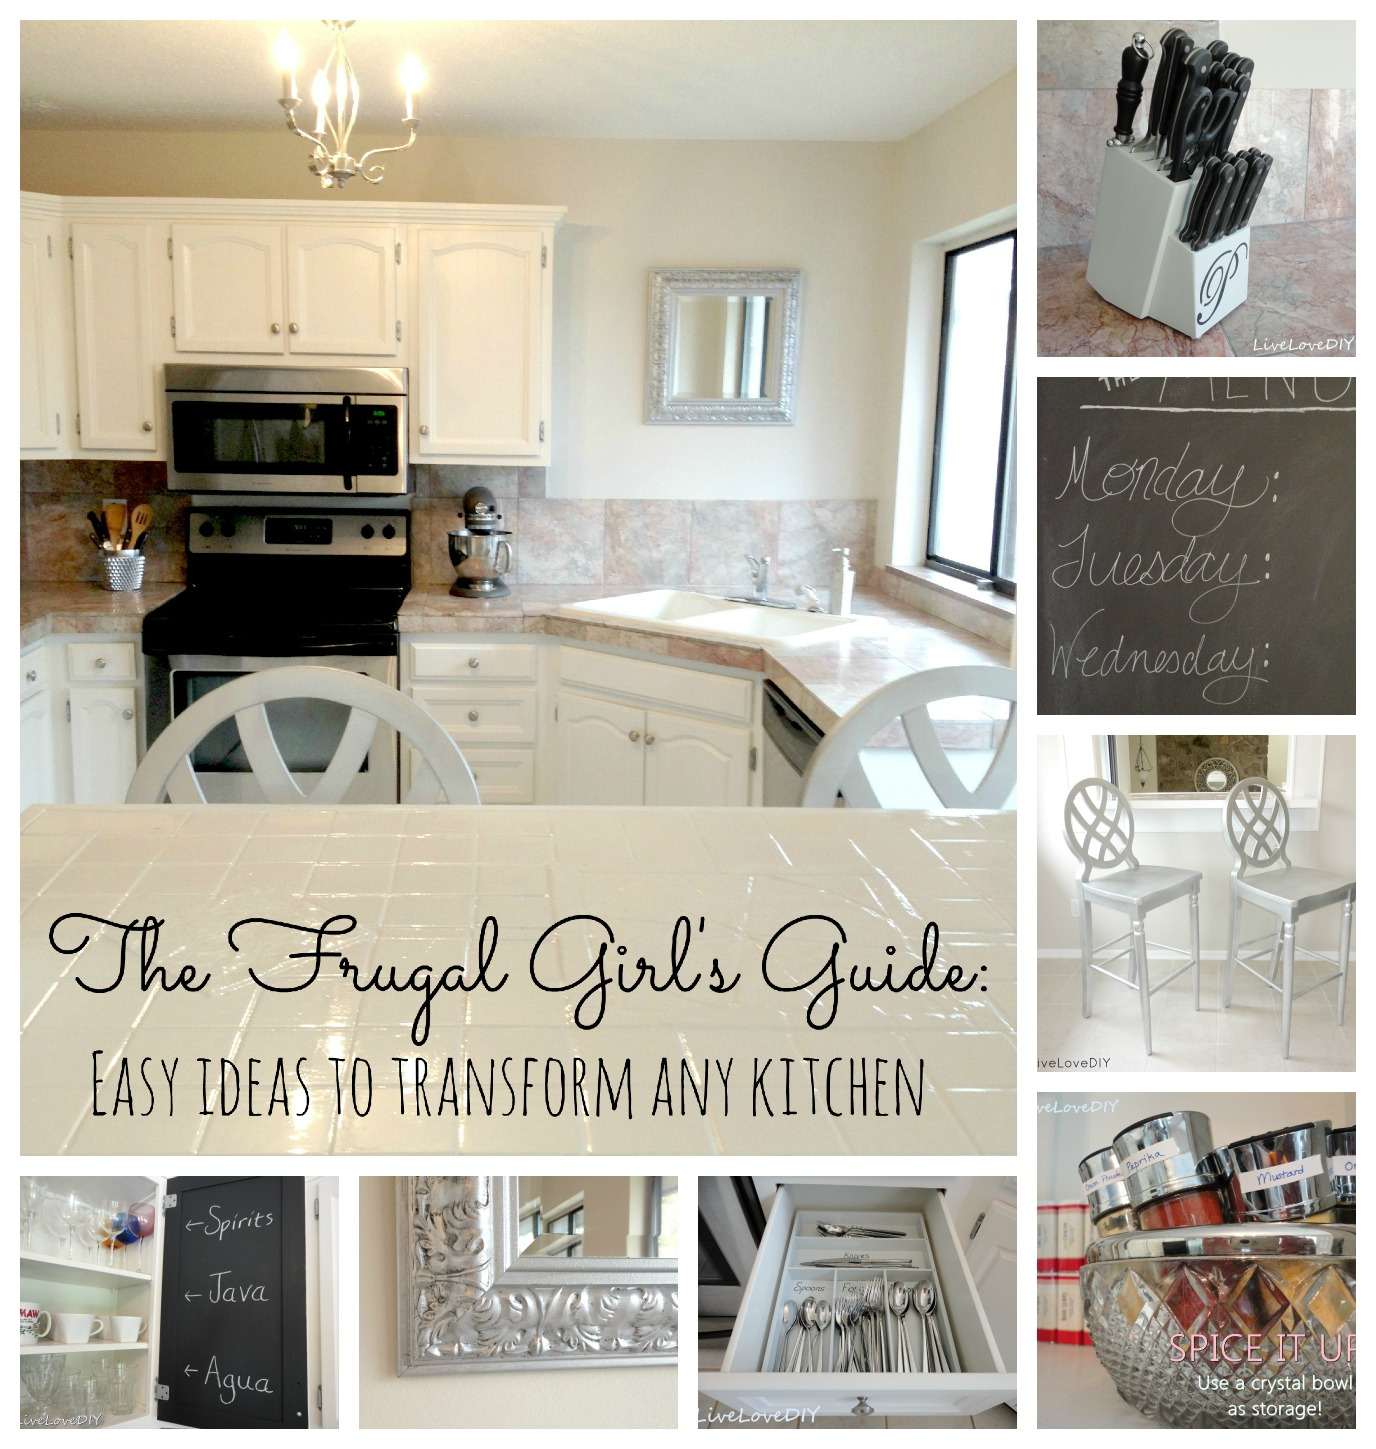 10 creative ways to update your kitchen kitchen cabinet updates Amazing ways to update your kitchen using only paint So many great ideas in this